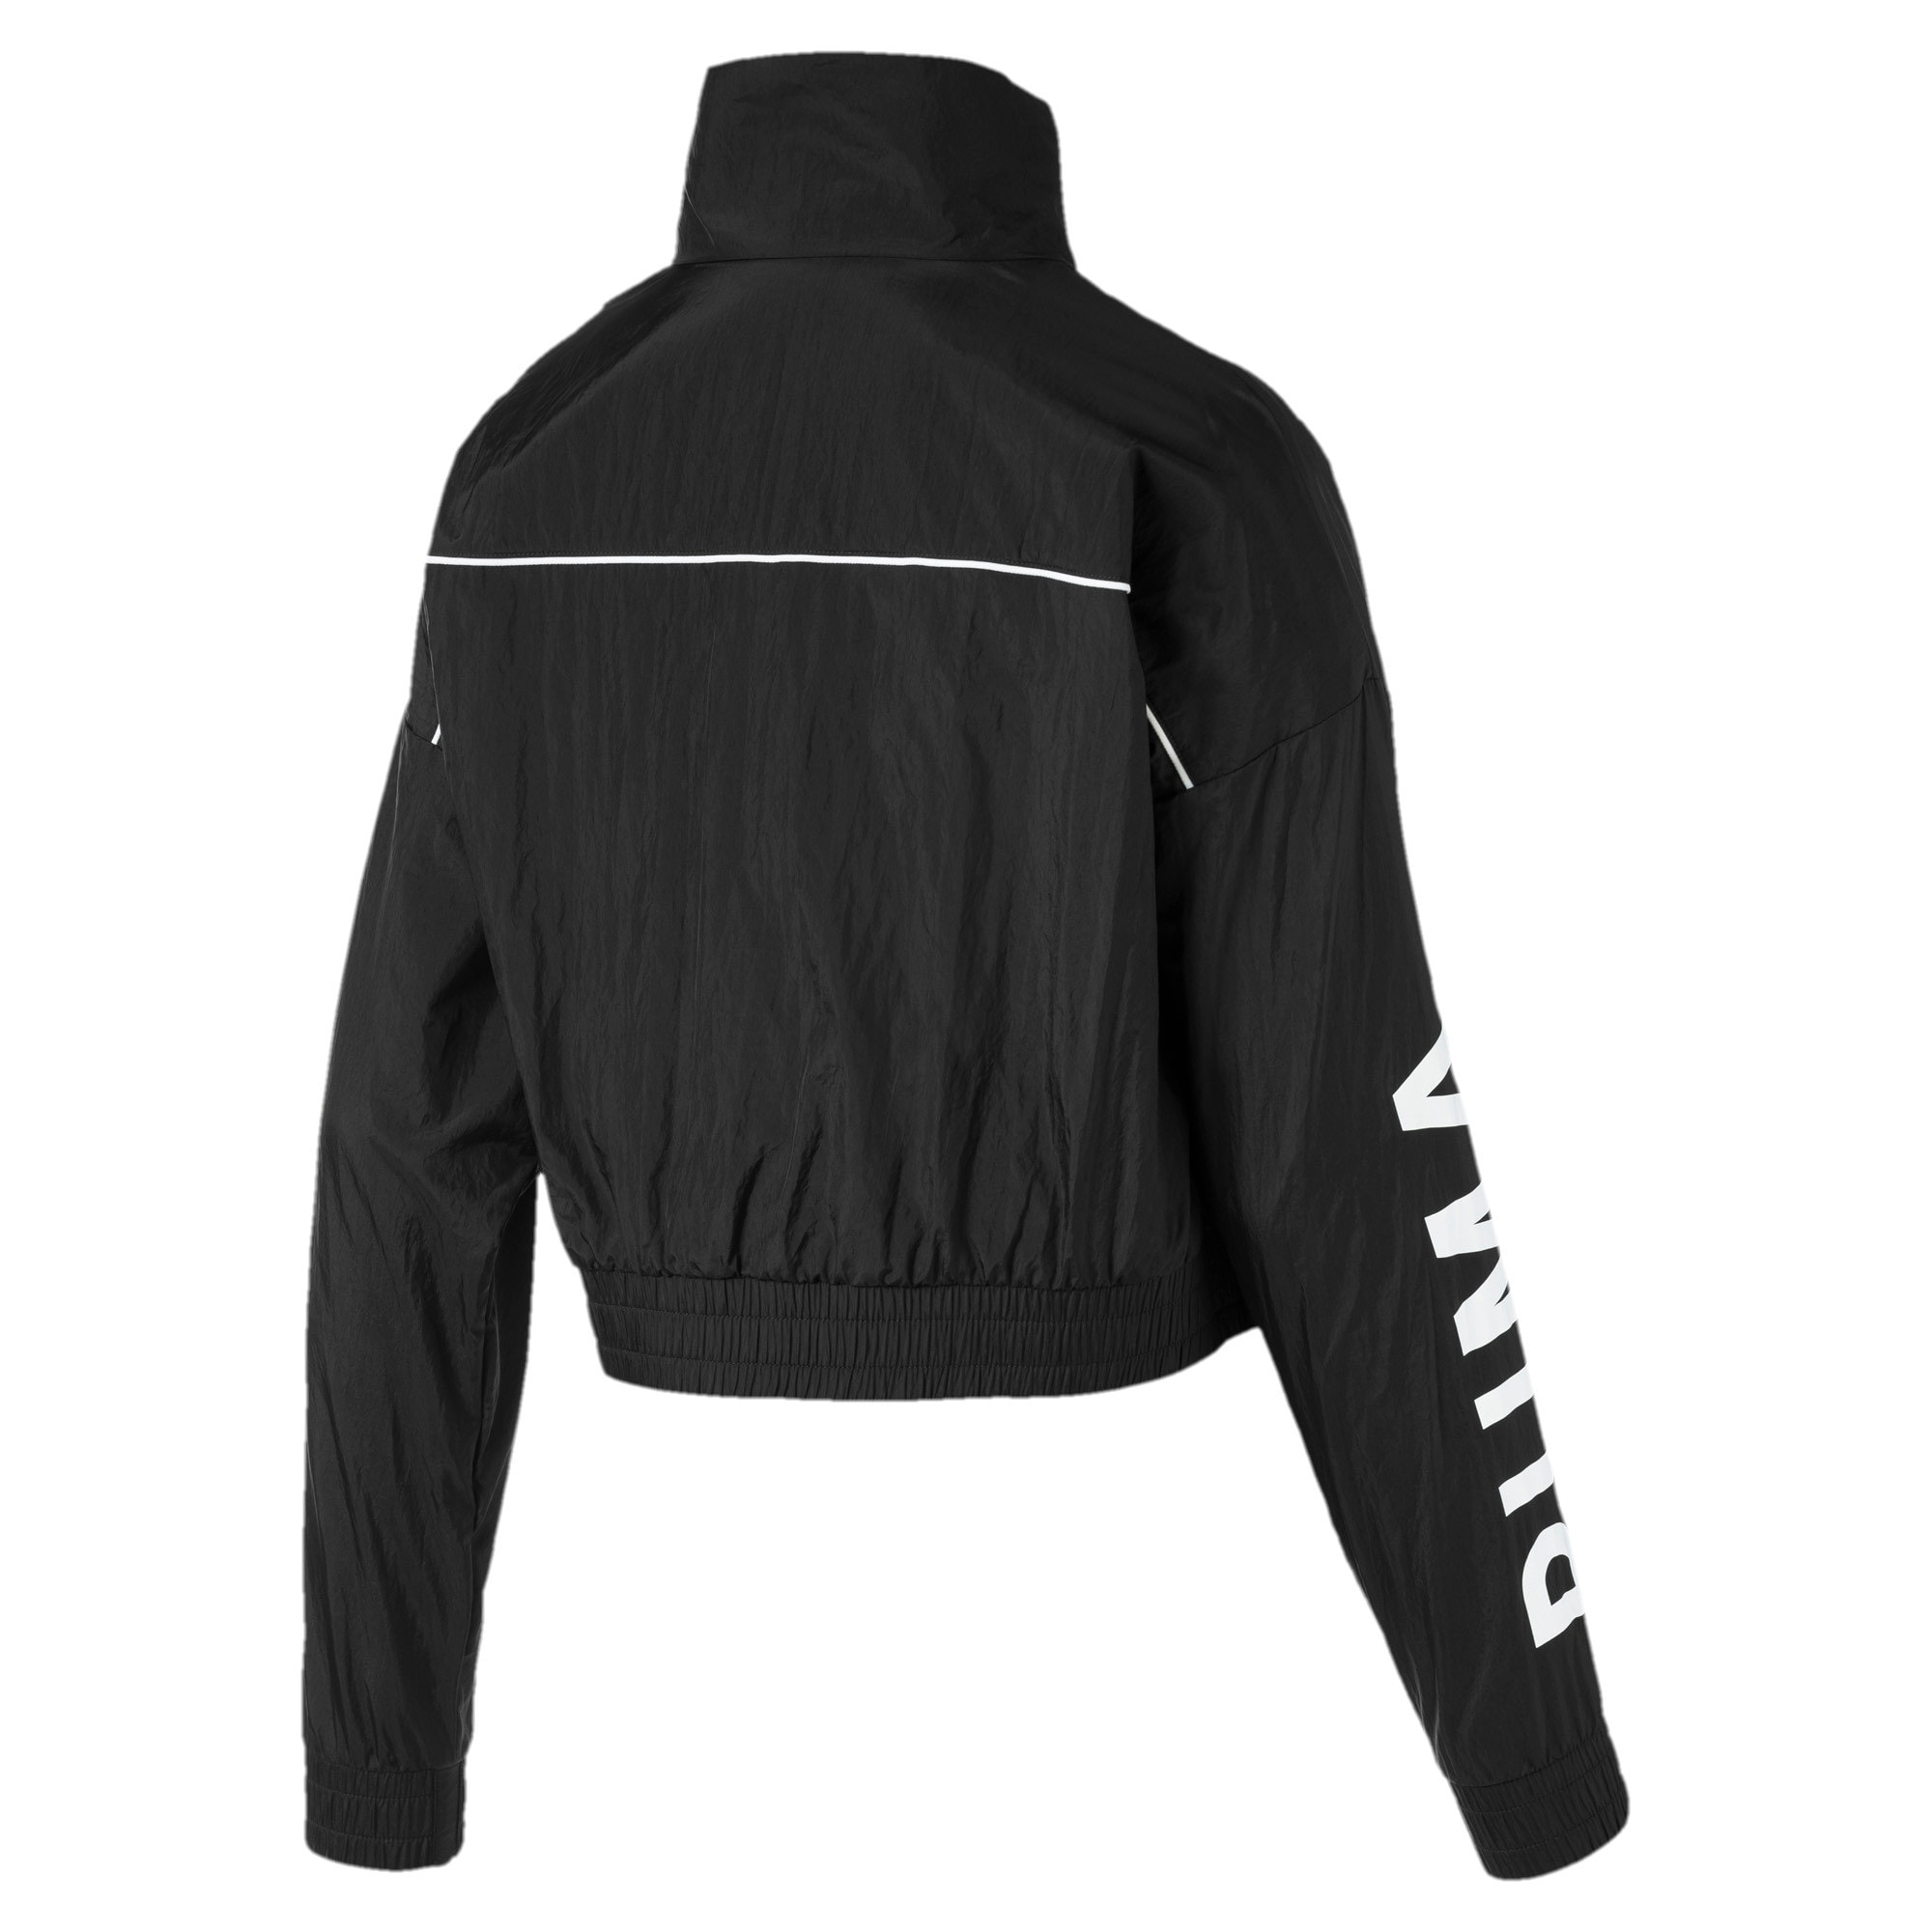 Thumbnail 5 of Chase Woven Women's Jacket, Puma Black, medium